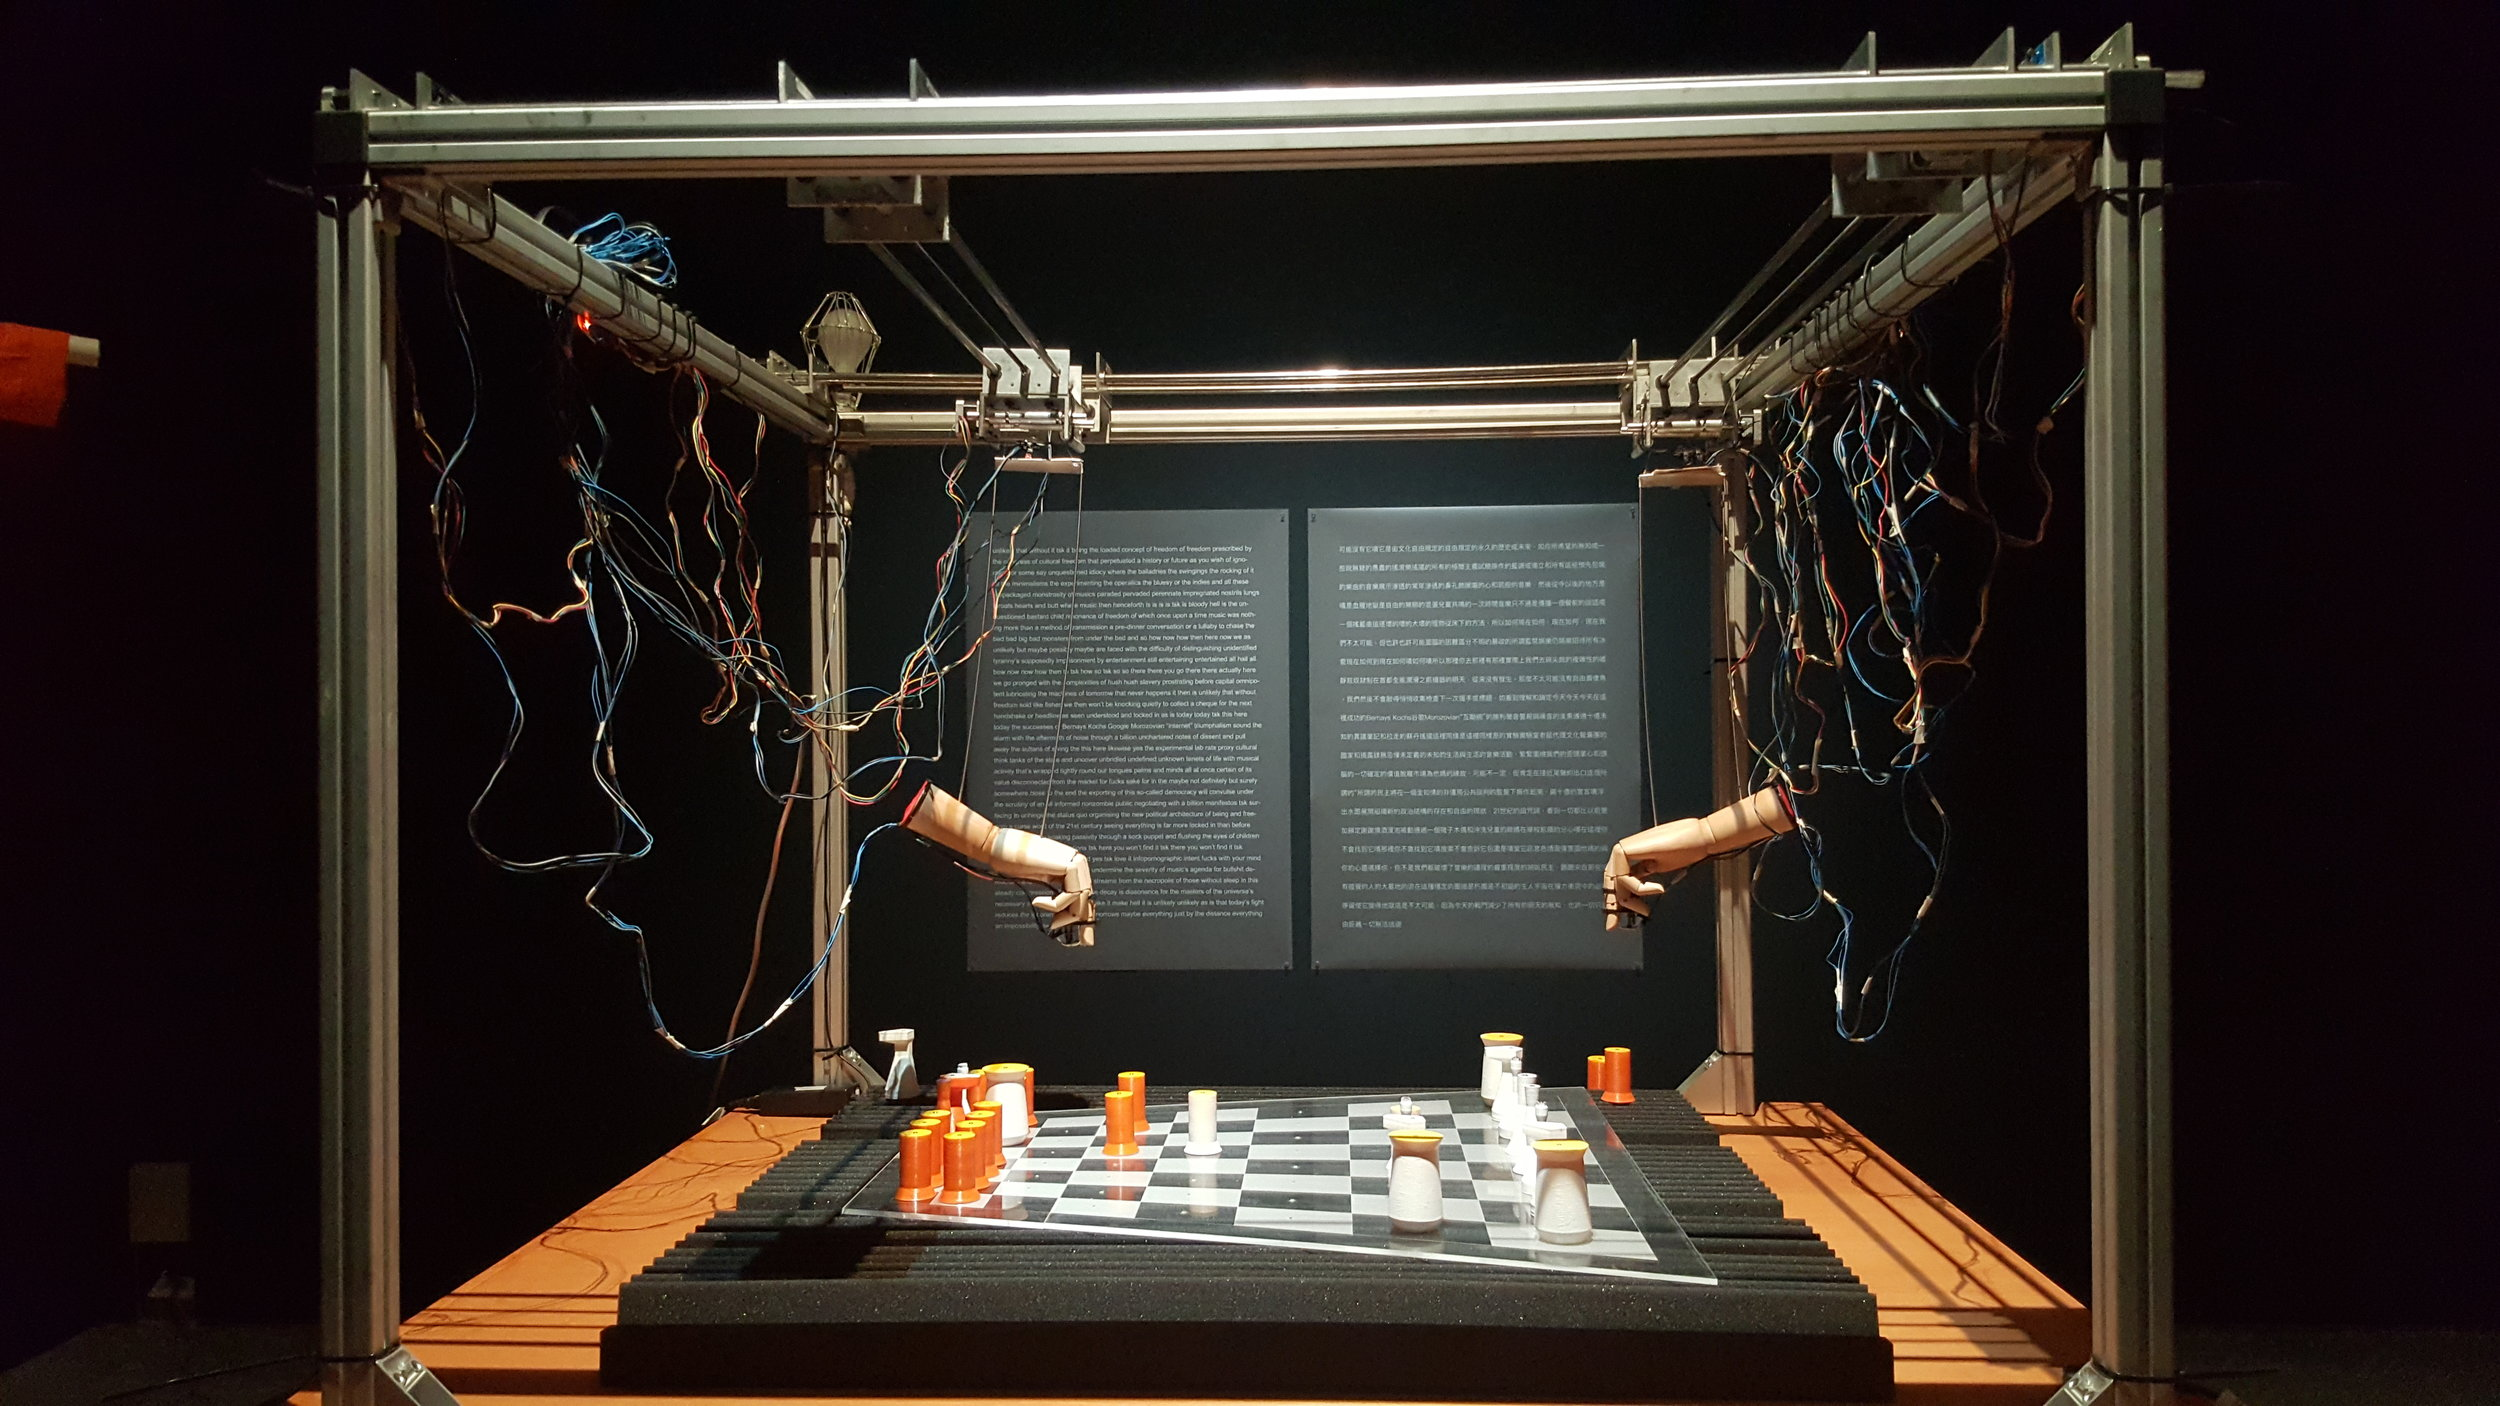 An out of the world, oddly-shaped chess game played between two wooden mannequin hands that are made alive by an explosion of wires dangling behind them.